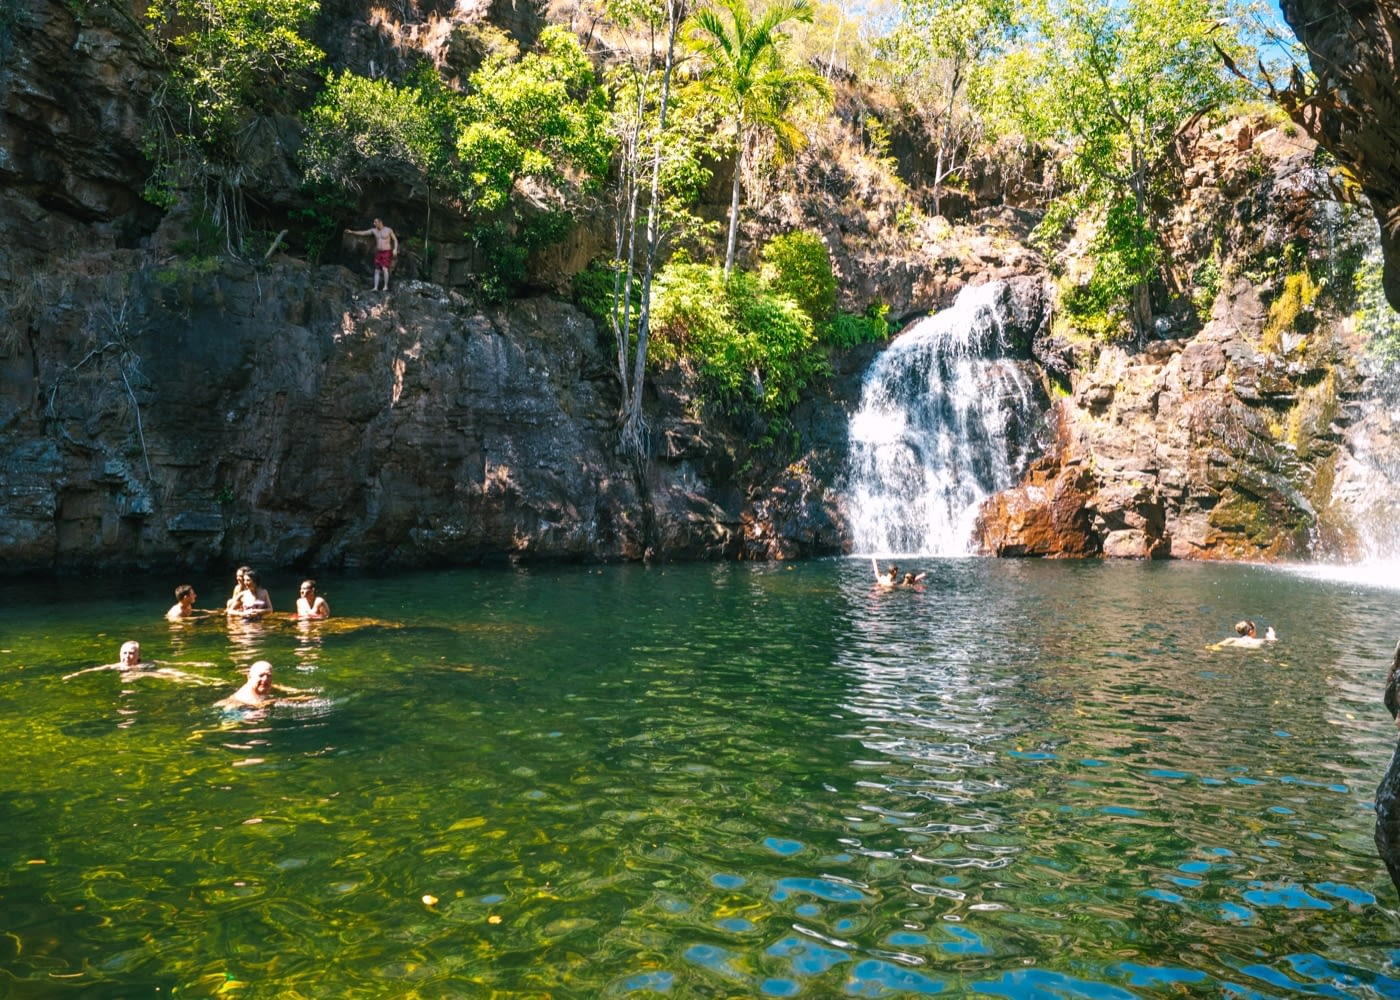 Litchfield National Park - Visitors taking a dip in Florence falls